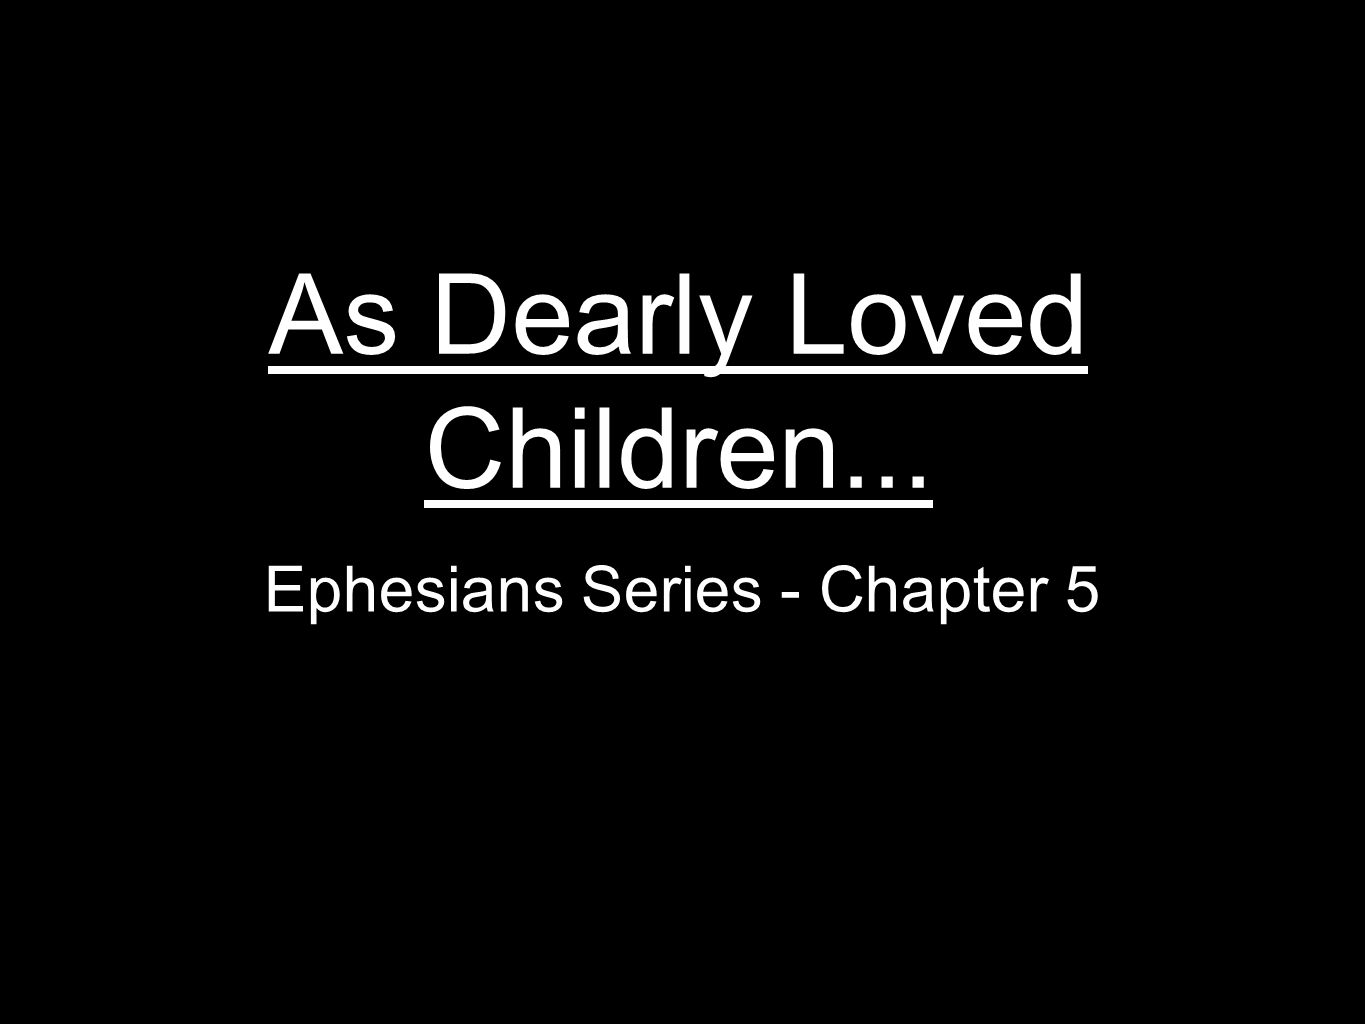 As Dearly Loved Children... Ephesians Series - Chapter 5